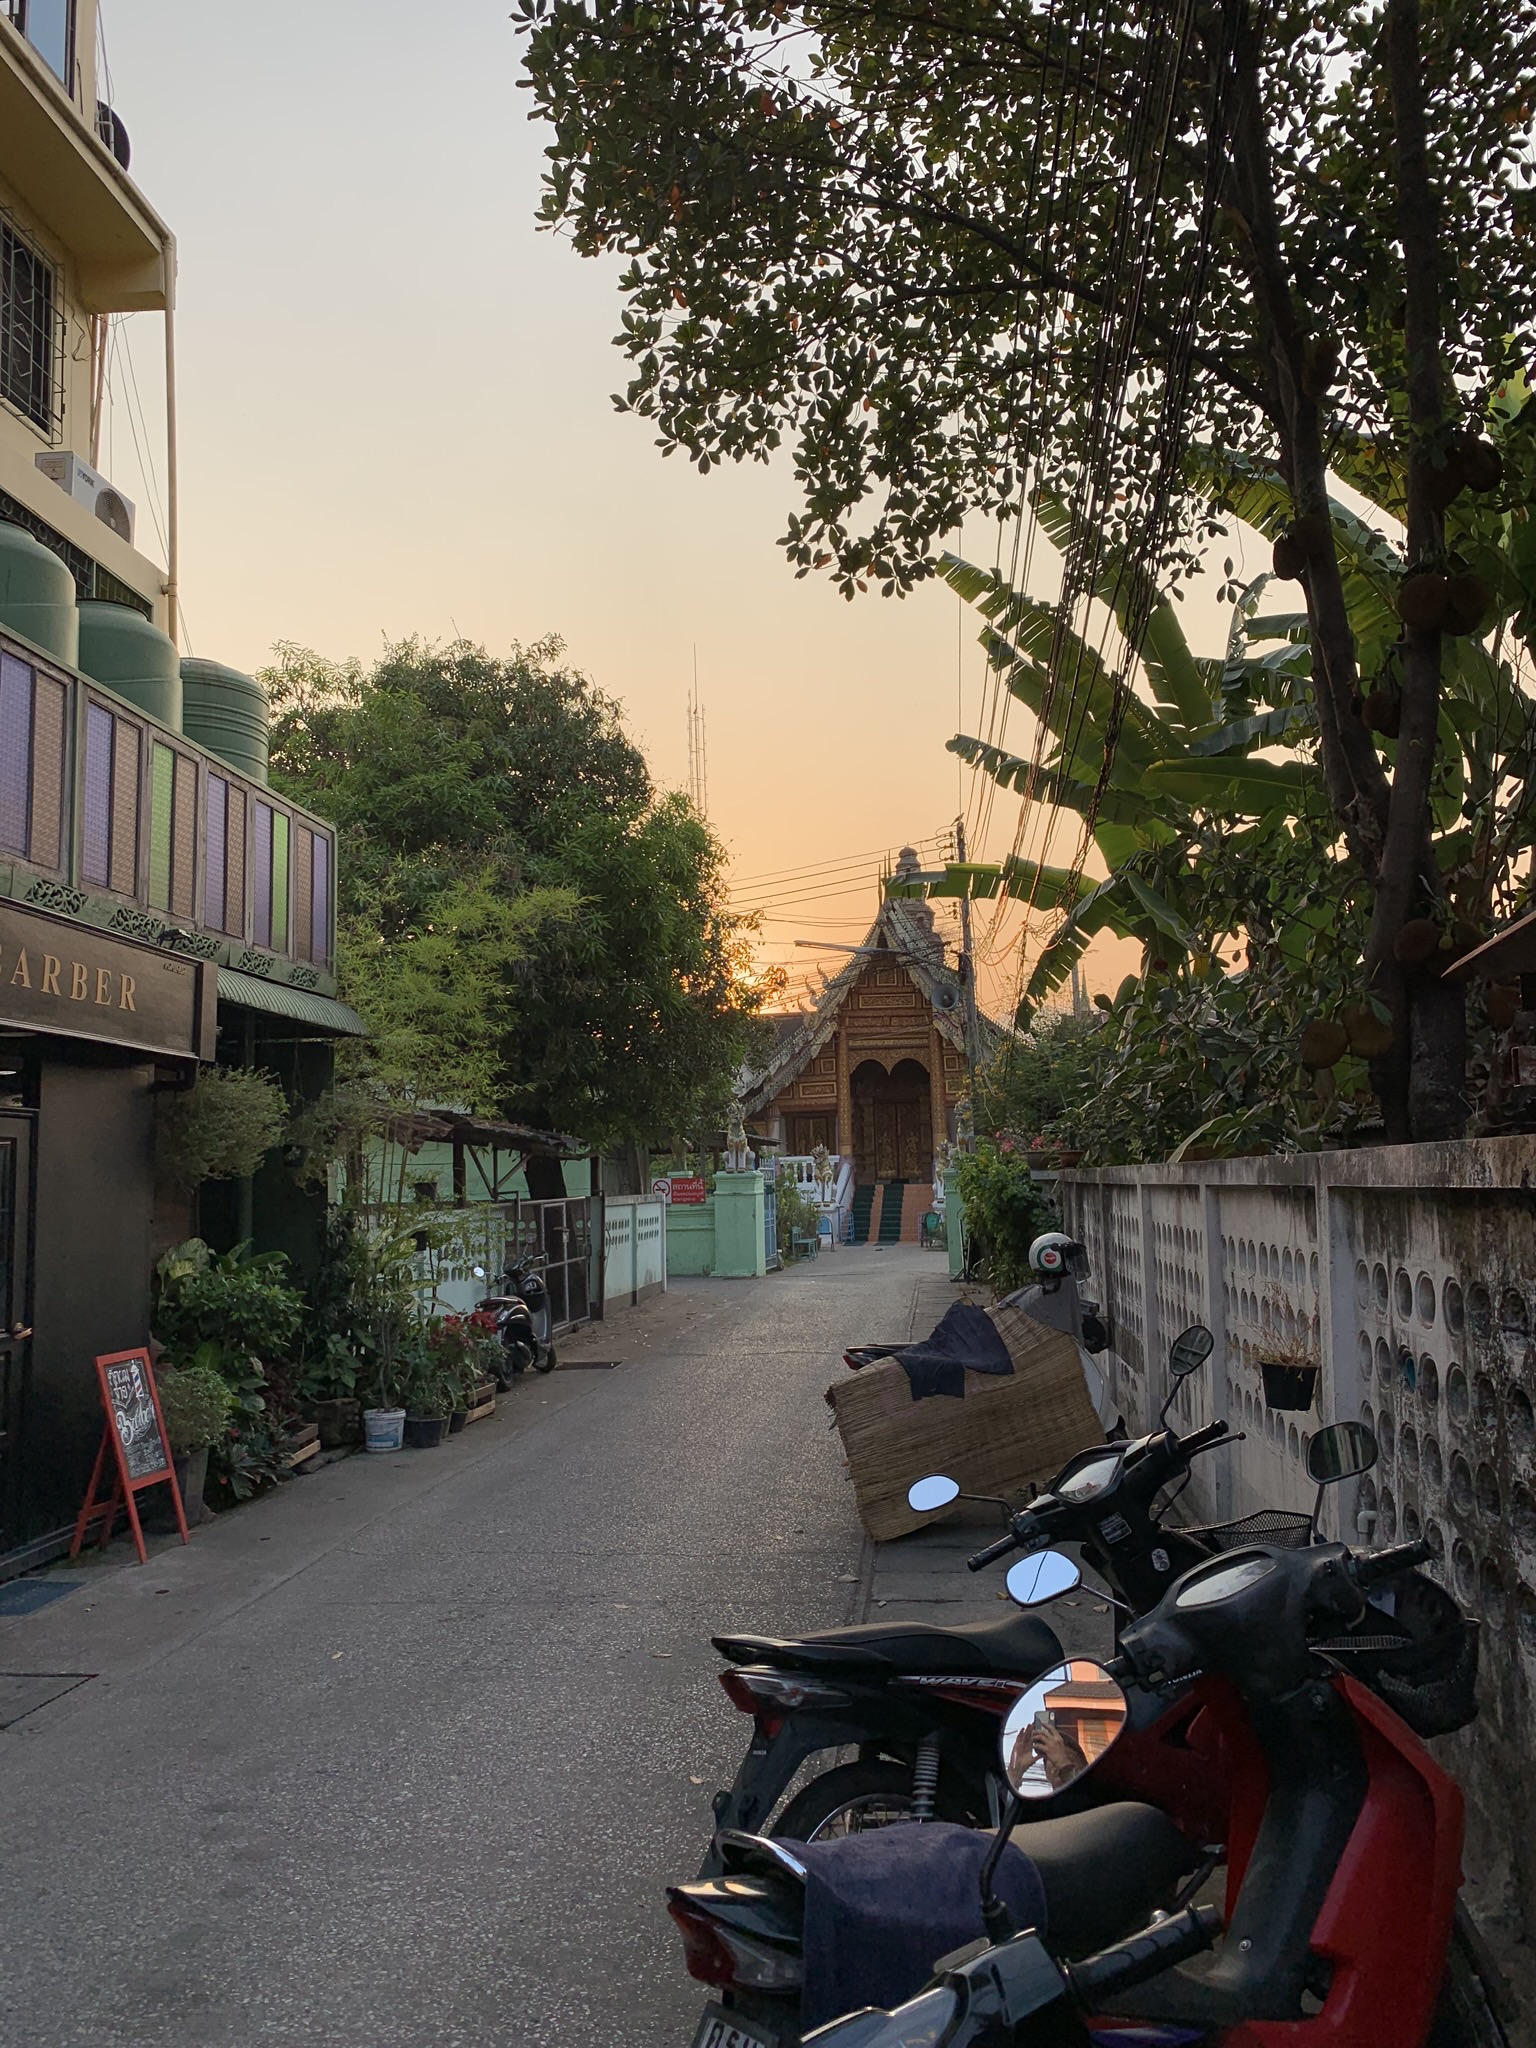 One of the many winding, narrow streets lined with scooters and graced with a temple at the end, as common as a coffee shop. I couldn't help but capture the sunset!